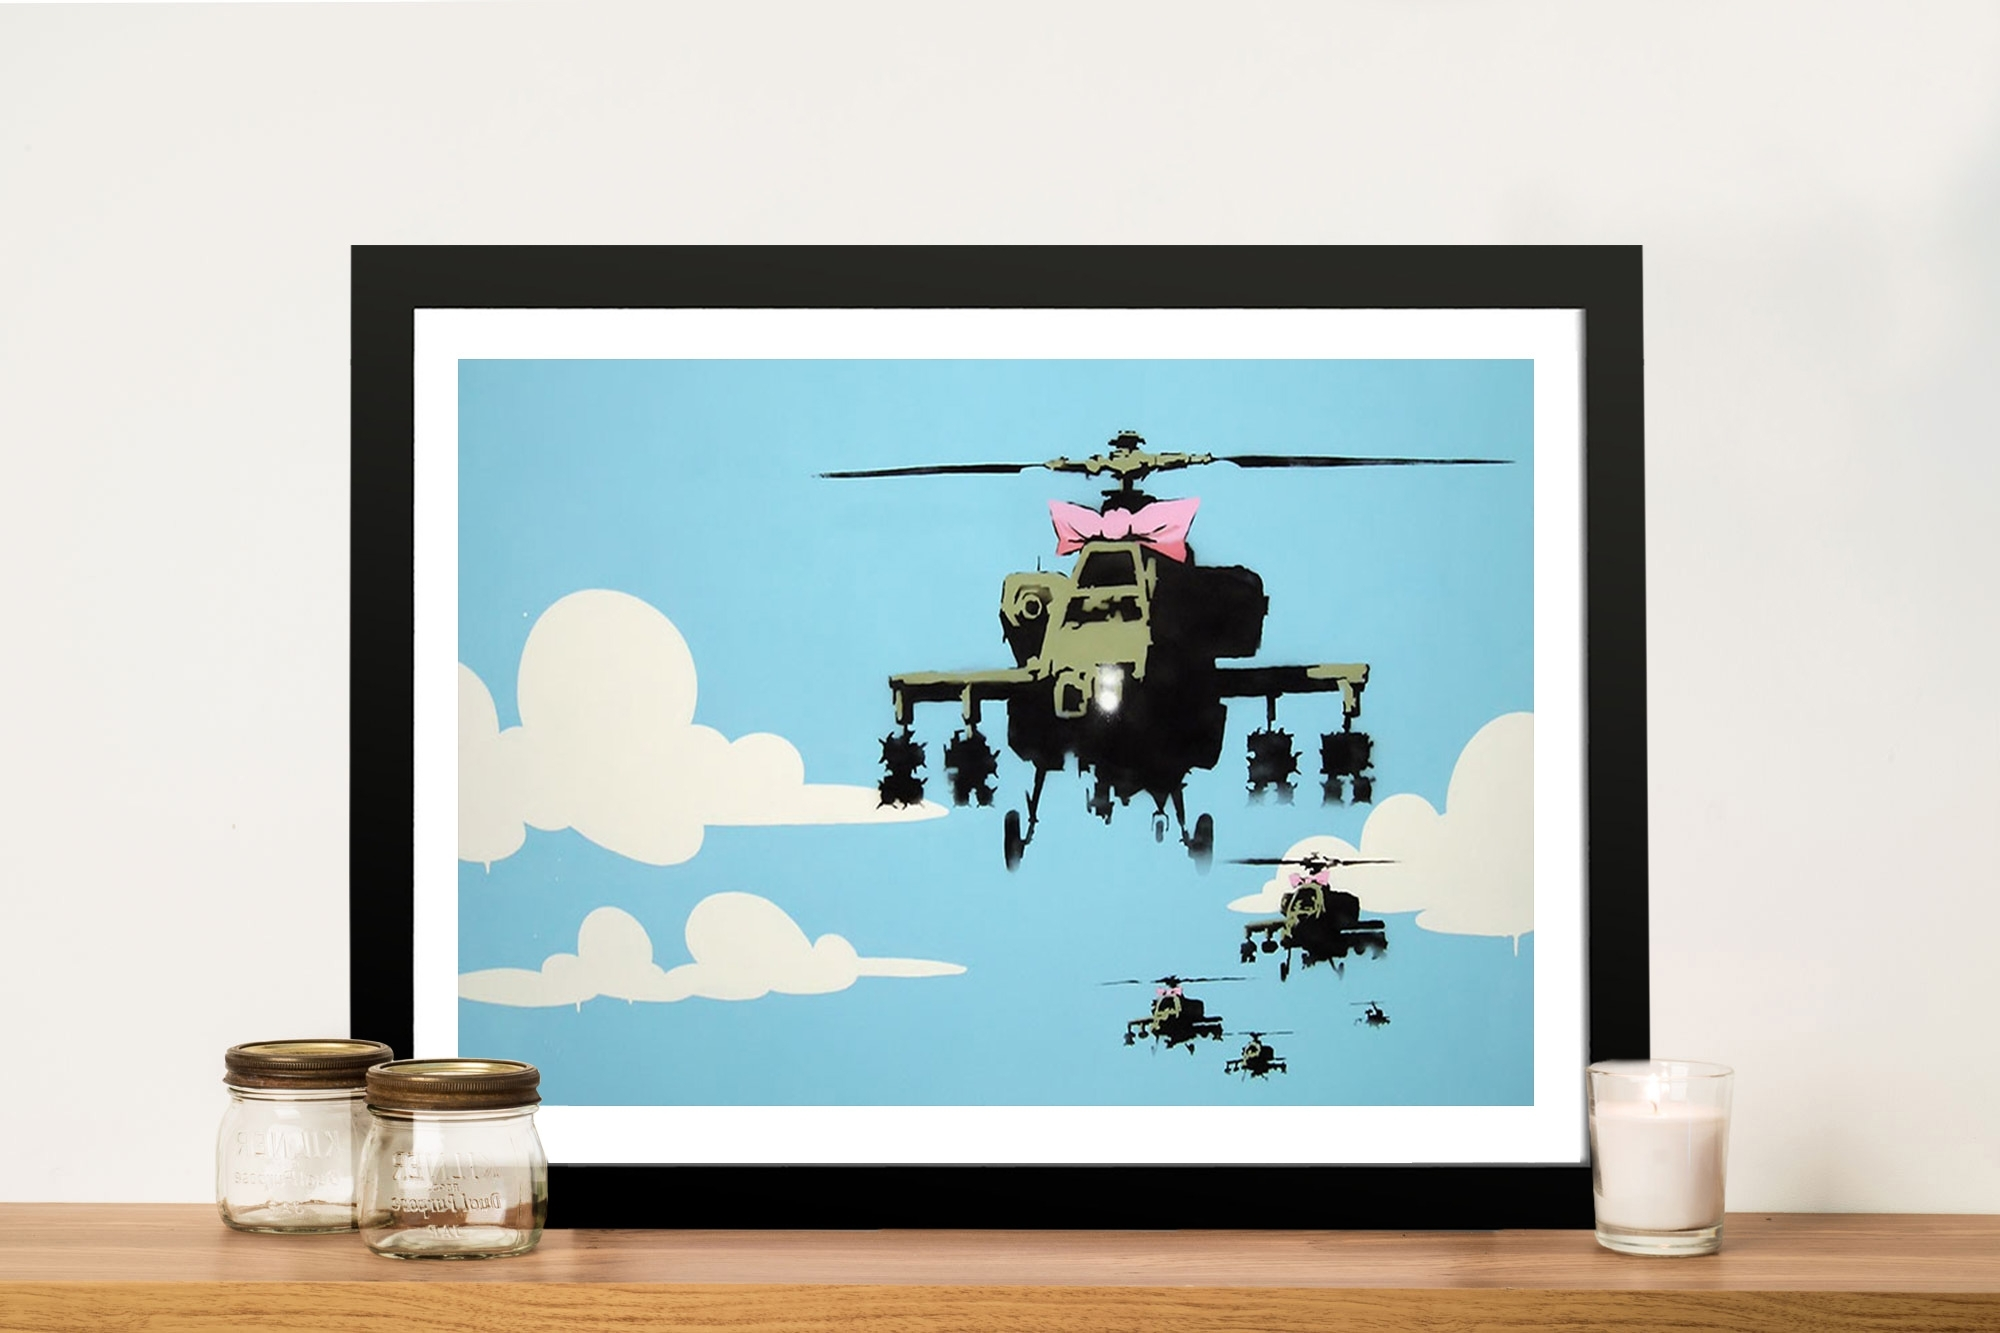 Happy Copters Banksy Artwork On Canvas Geelong Australia Within 2017 Geelong Canvas Wall Art (View 9 of 15)